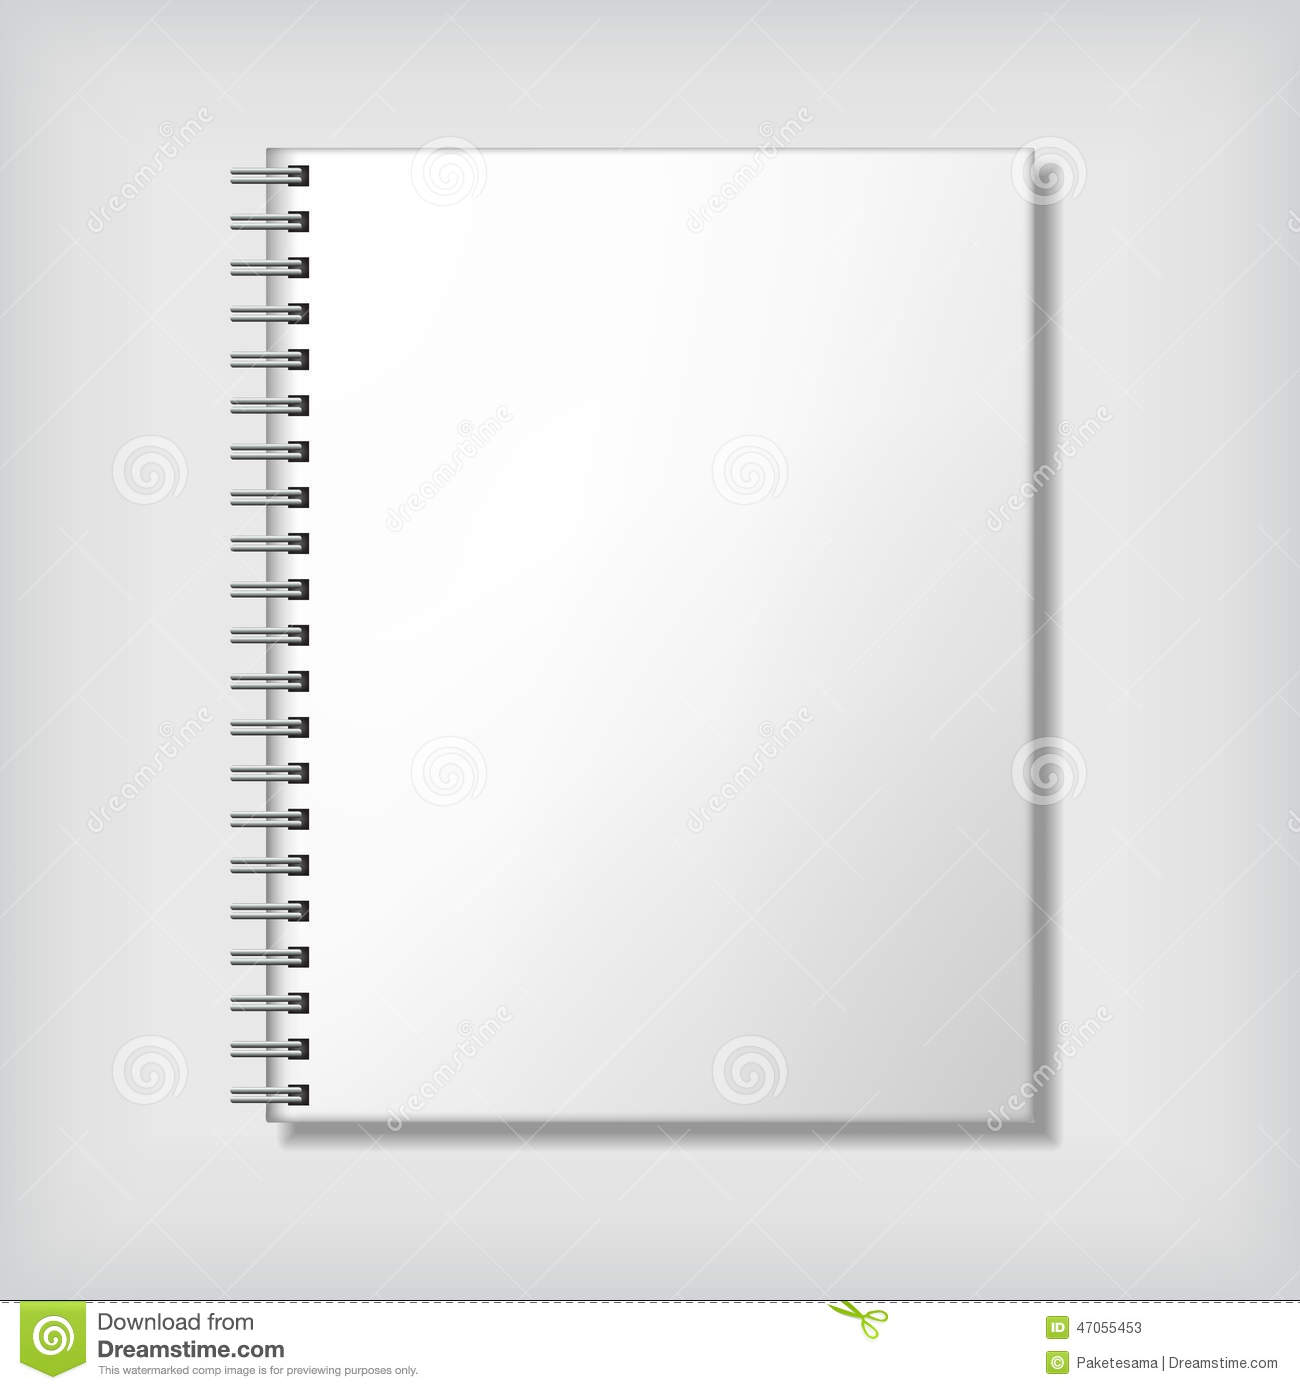 Notebook mockup, with place for texture. Corporate identity.